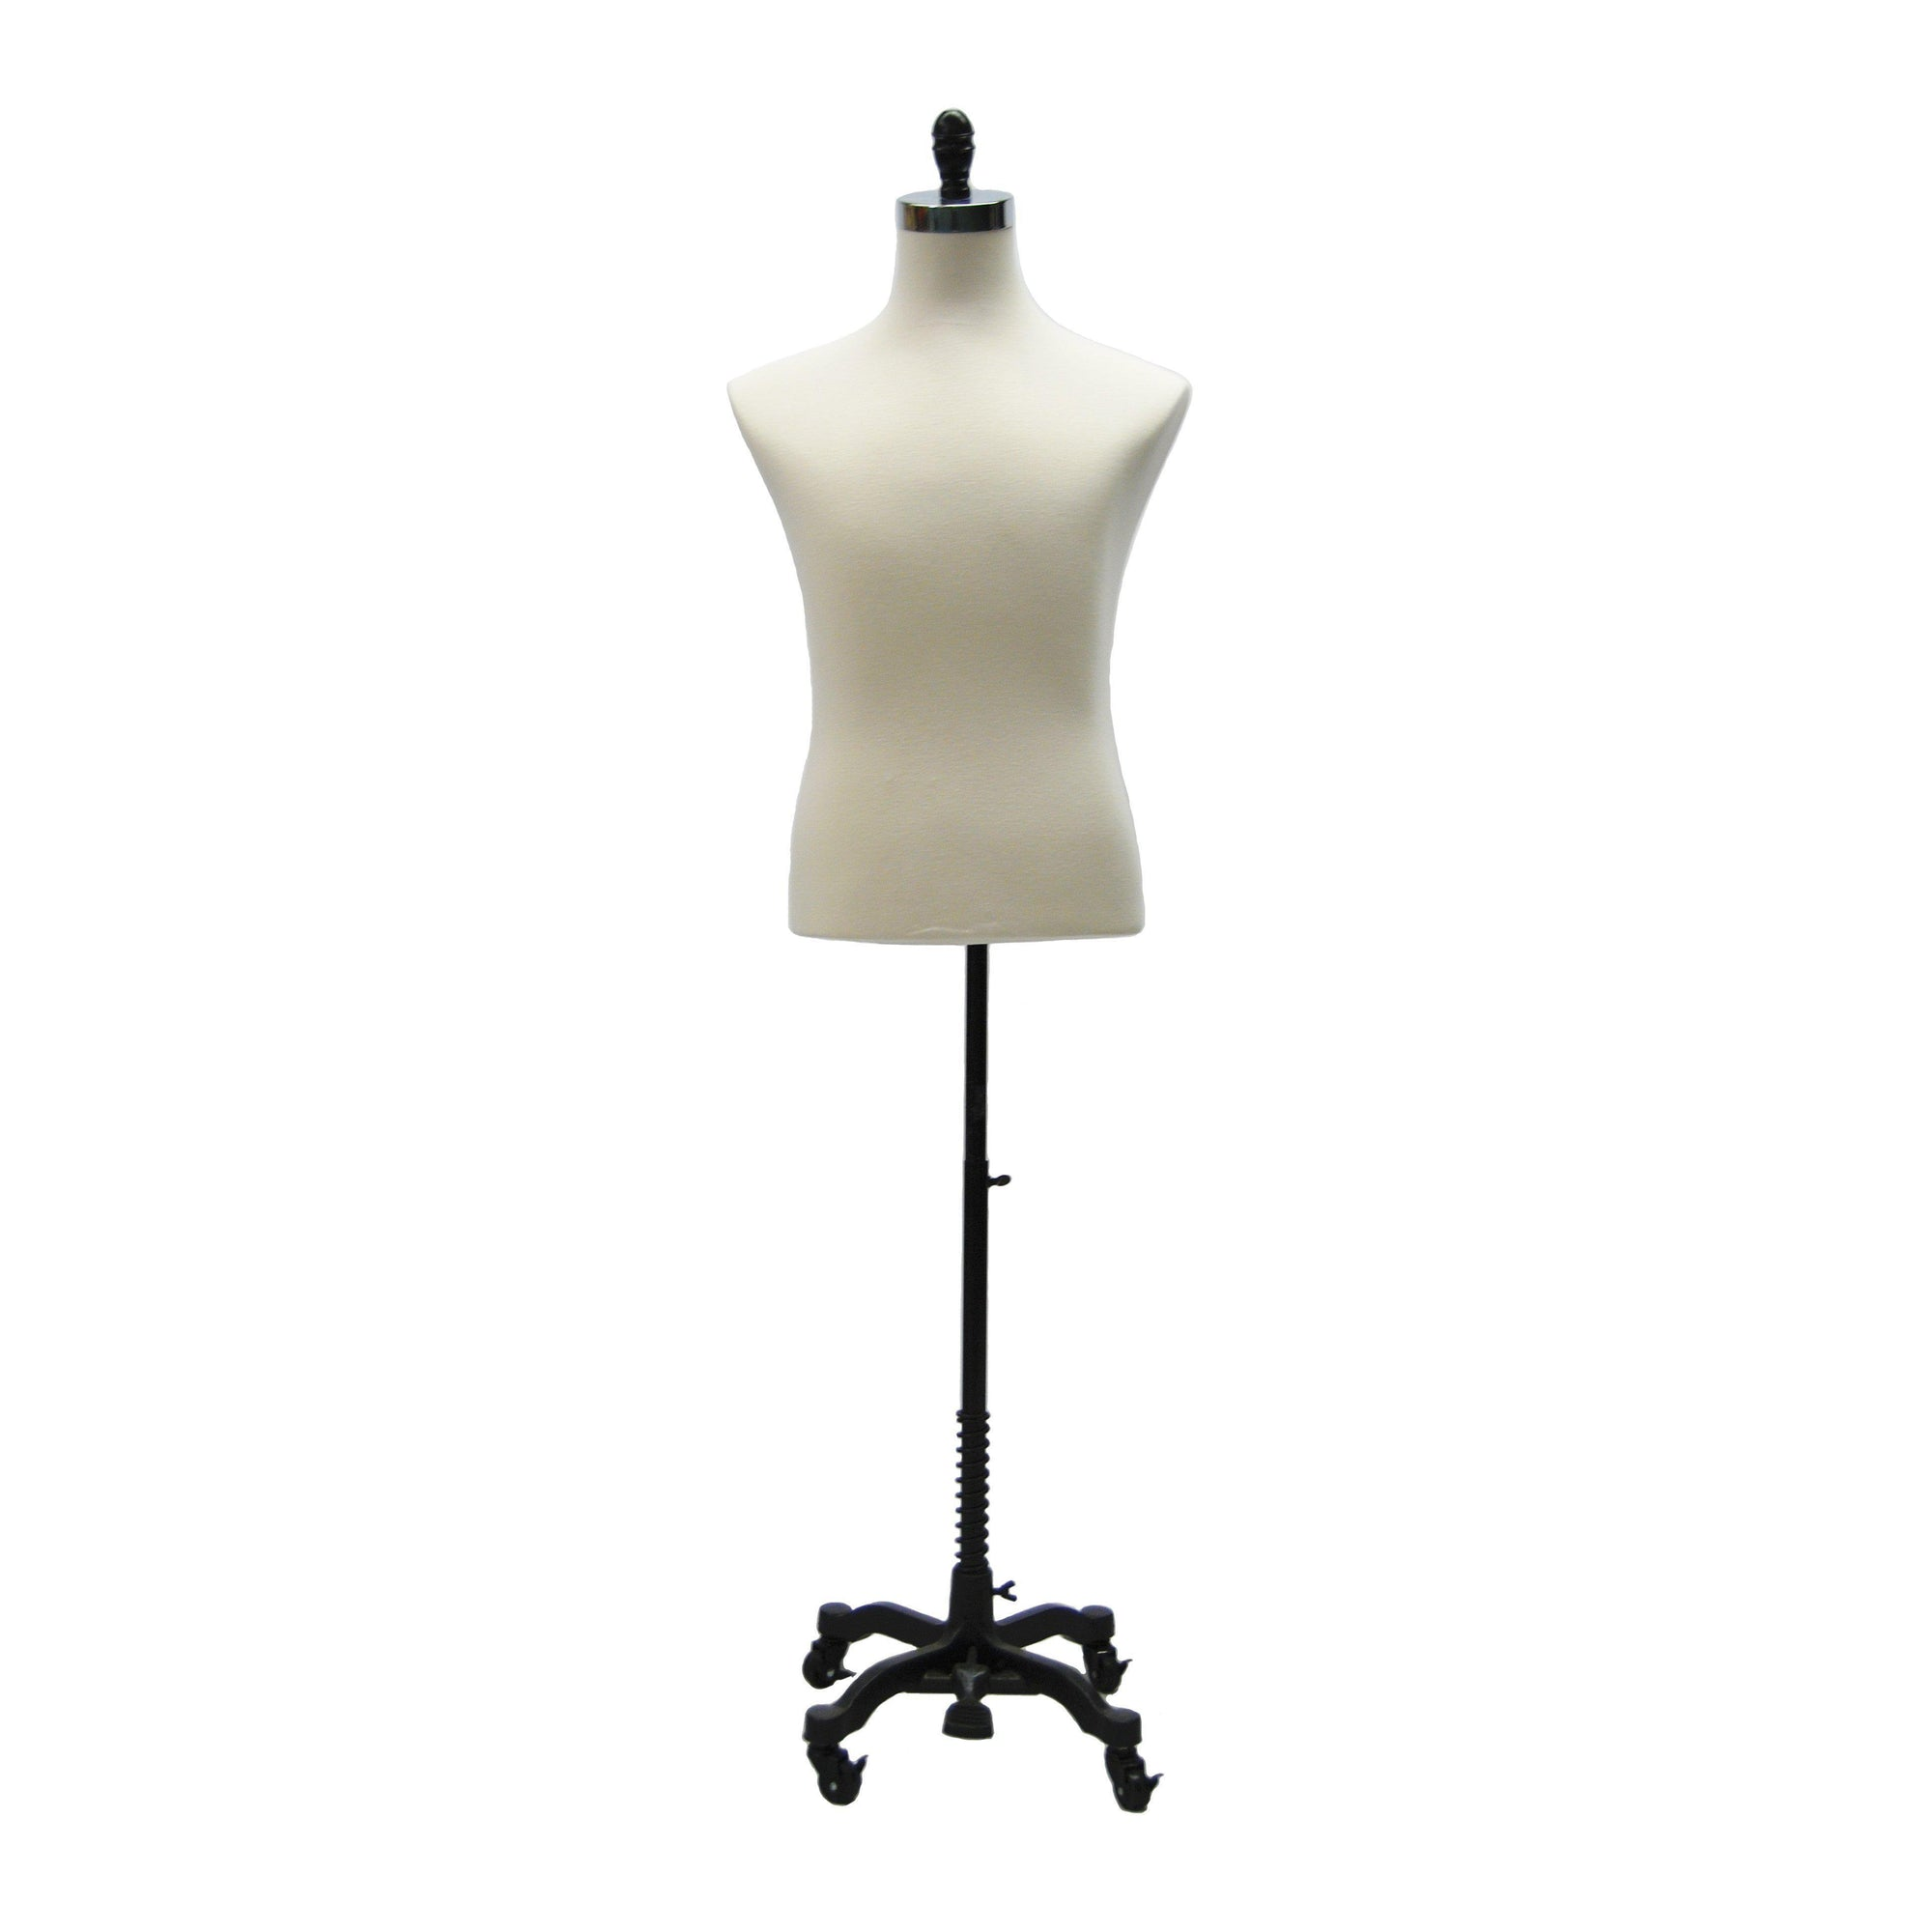 Best Seller Black Rolling Base / White Male Dress Form With Rolling Base For Fashion Stores and Retail Shops